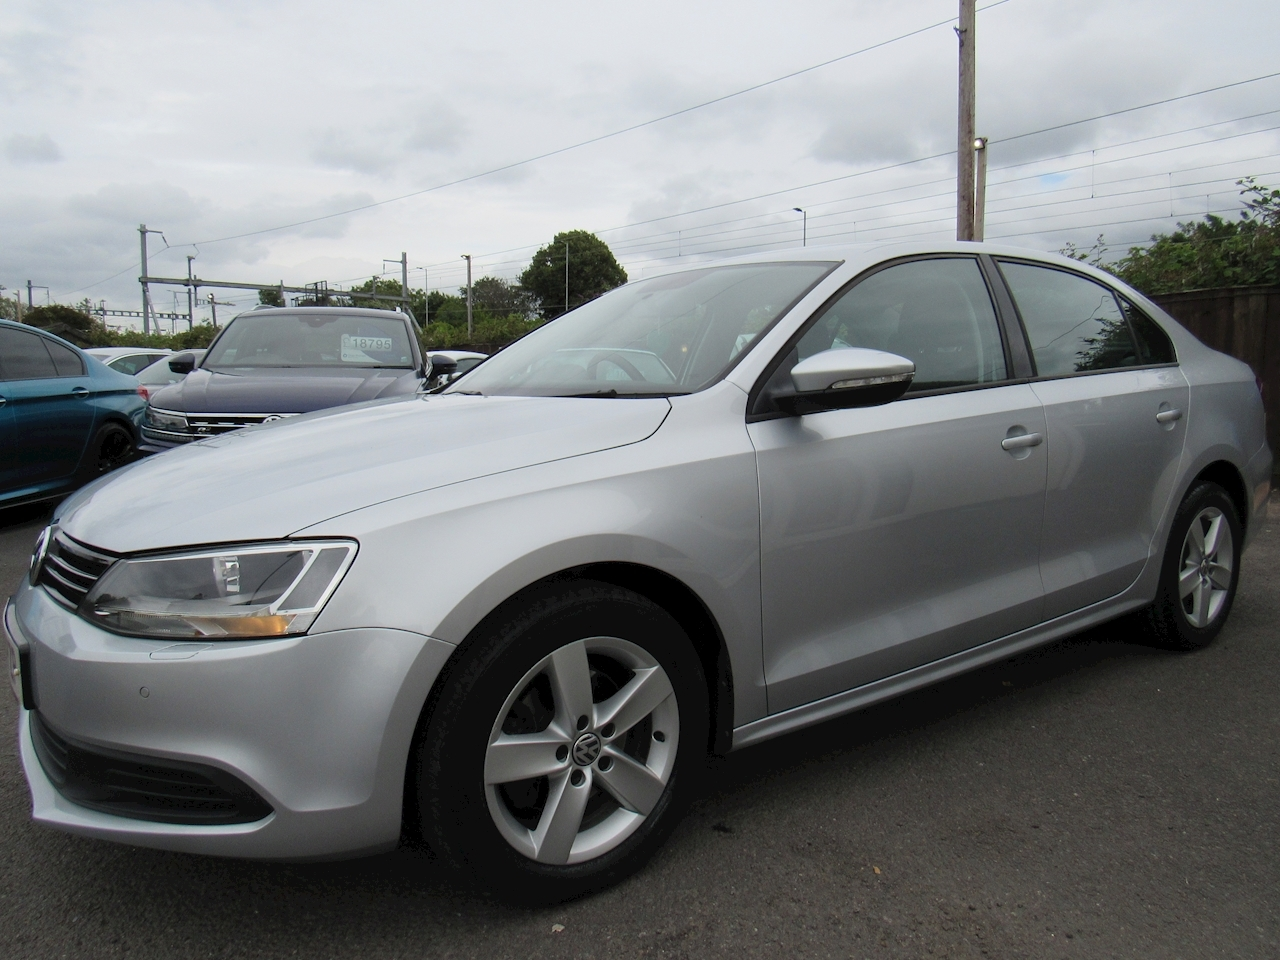 Volkswagen Jetta Se Tdi Bluemotion Technology Saloon 1.6 Manual Diesel